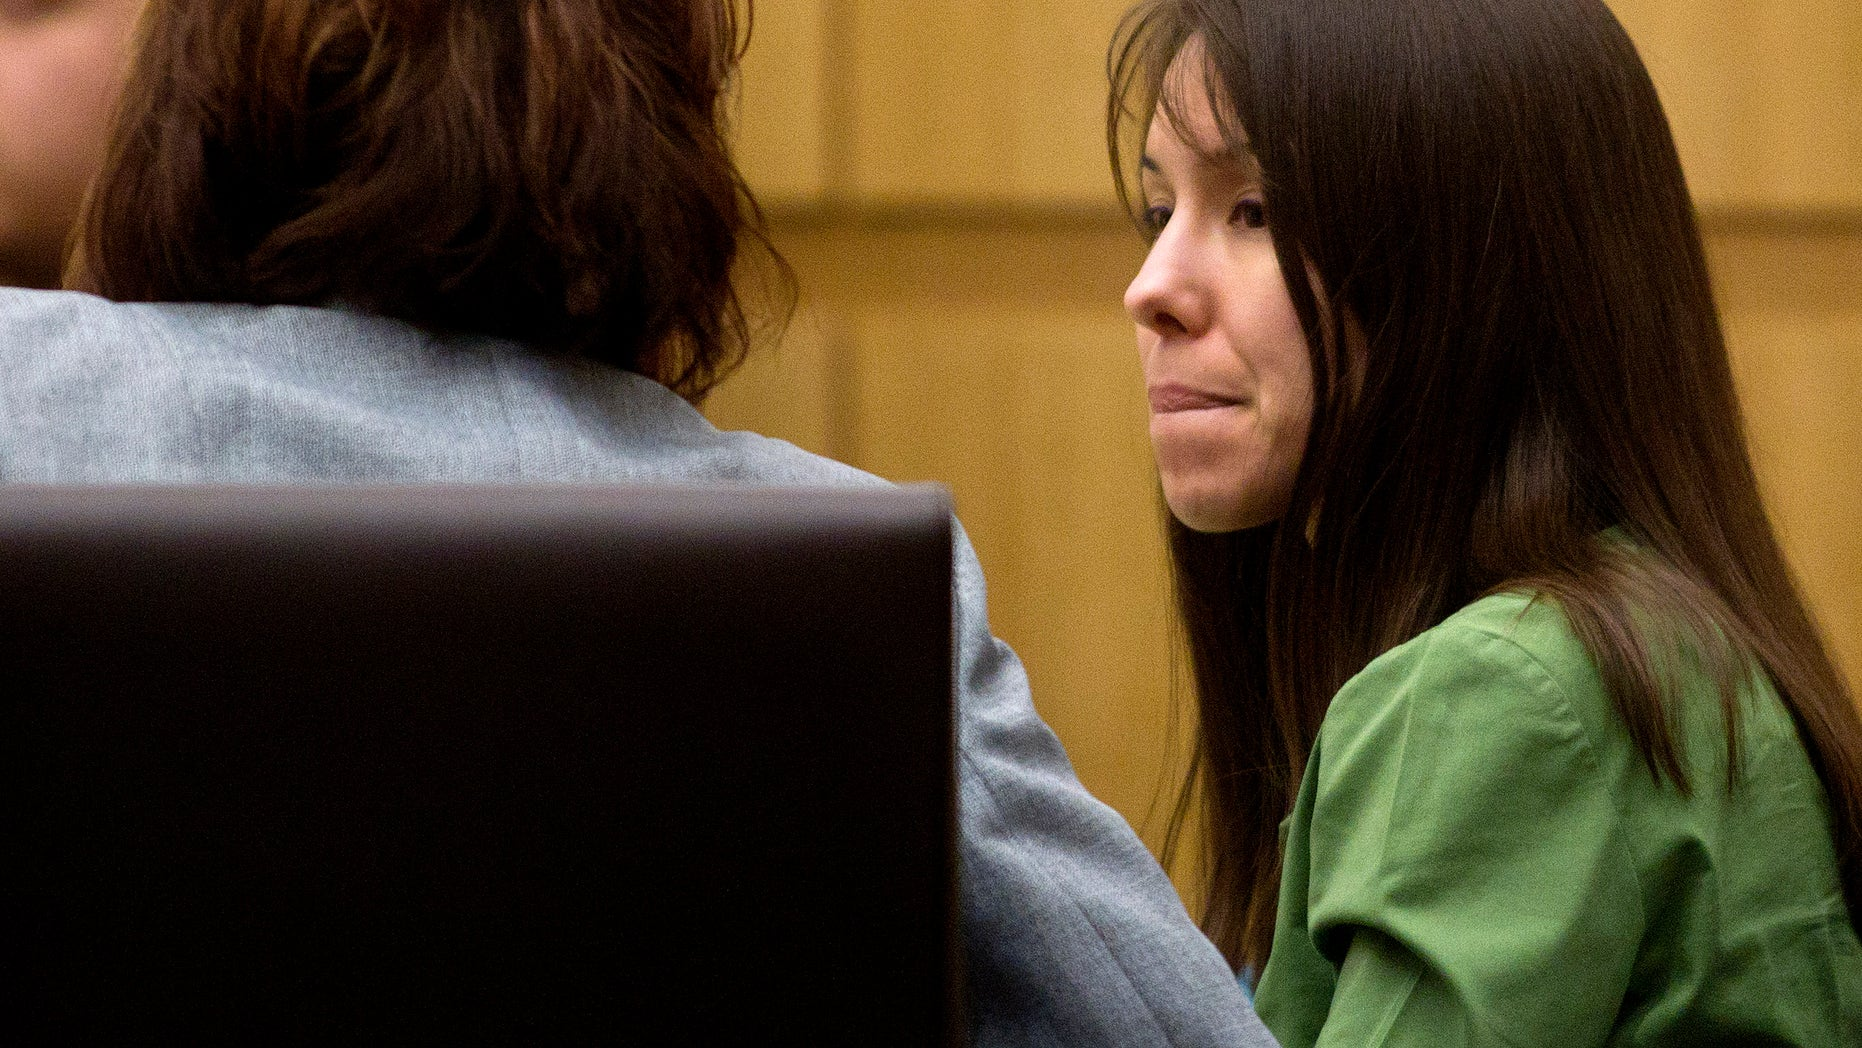 Jan 3, 2012: Defendant Jodi Arias talks with her defense team during her trial at Maricopa County Court in Phoenix.